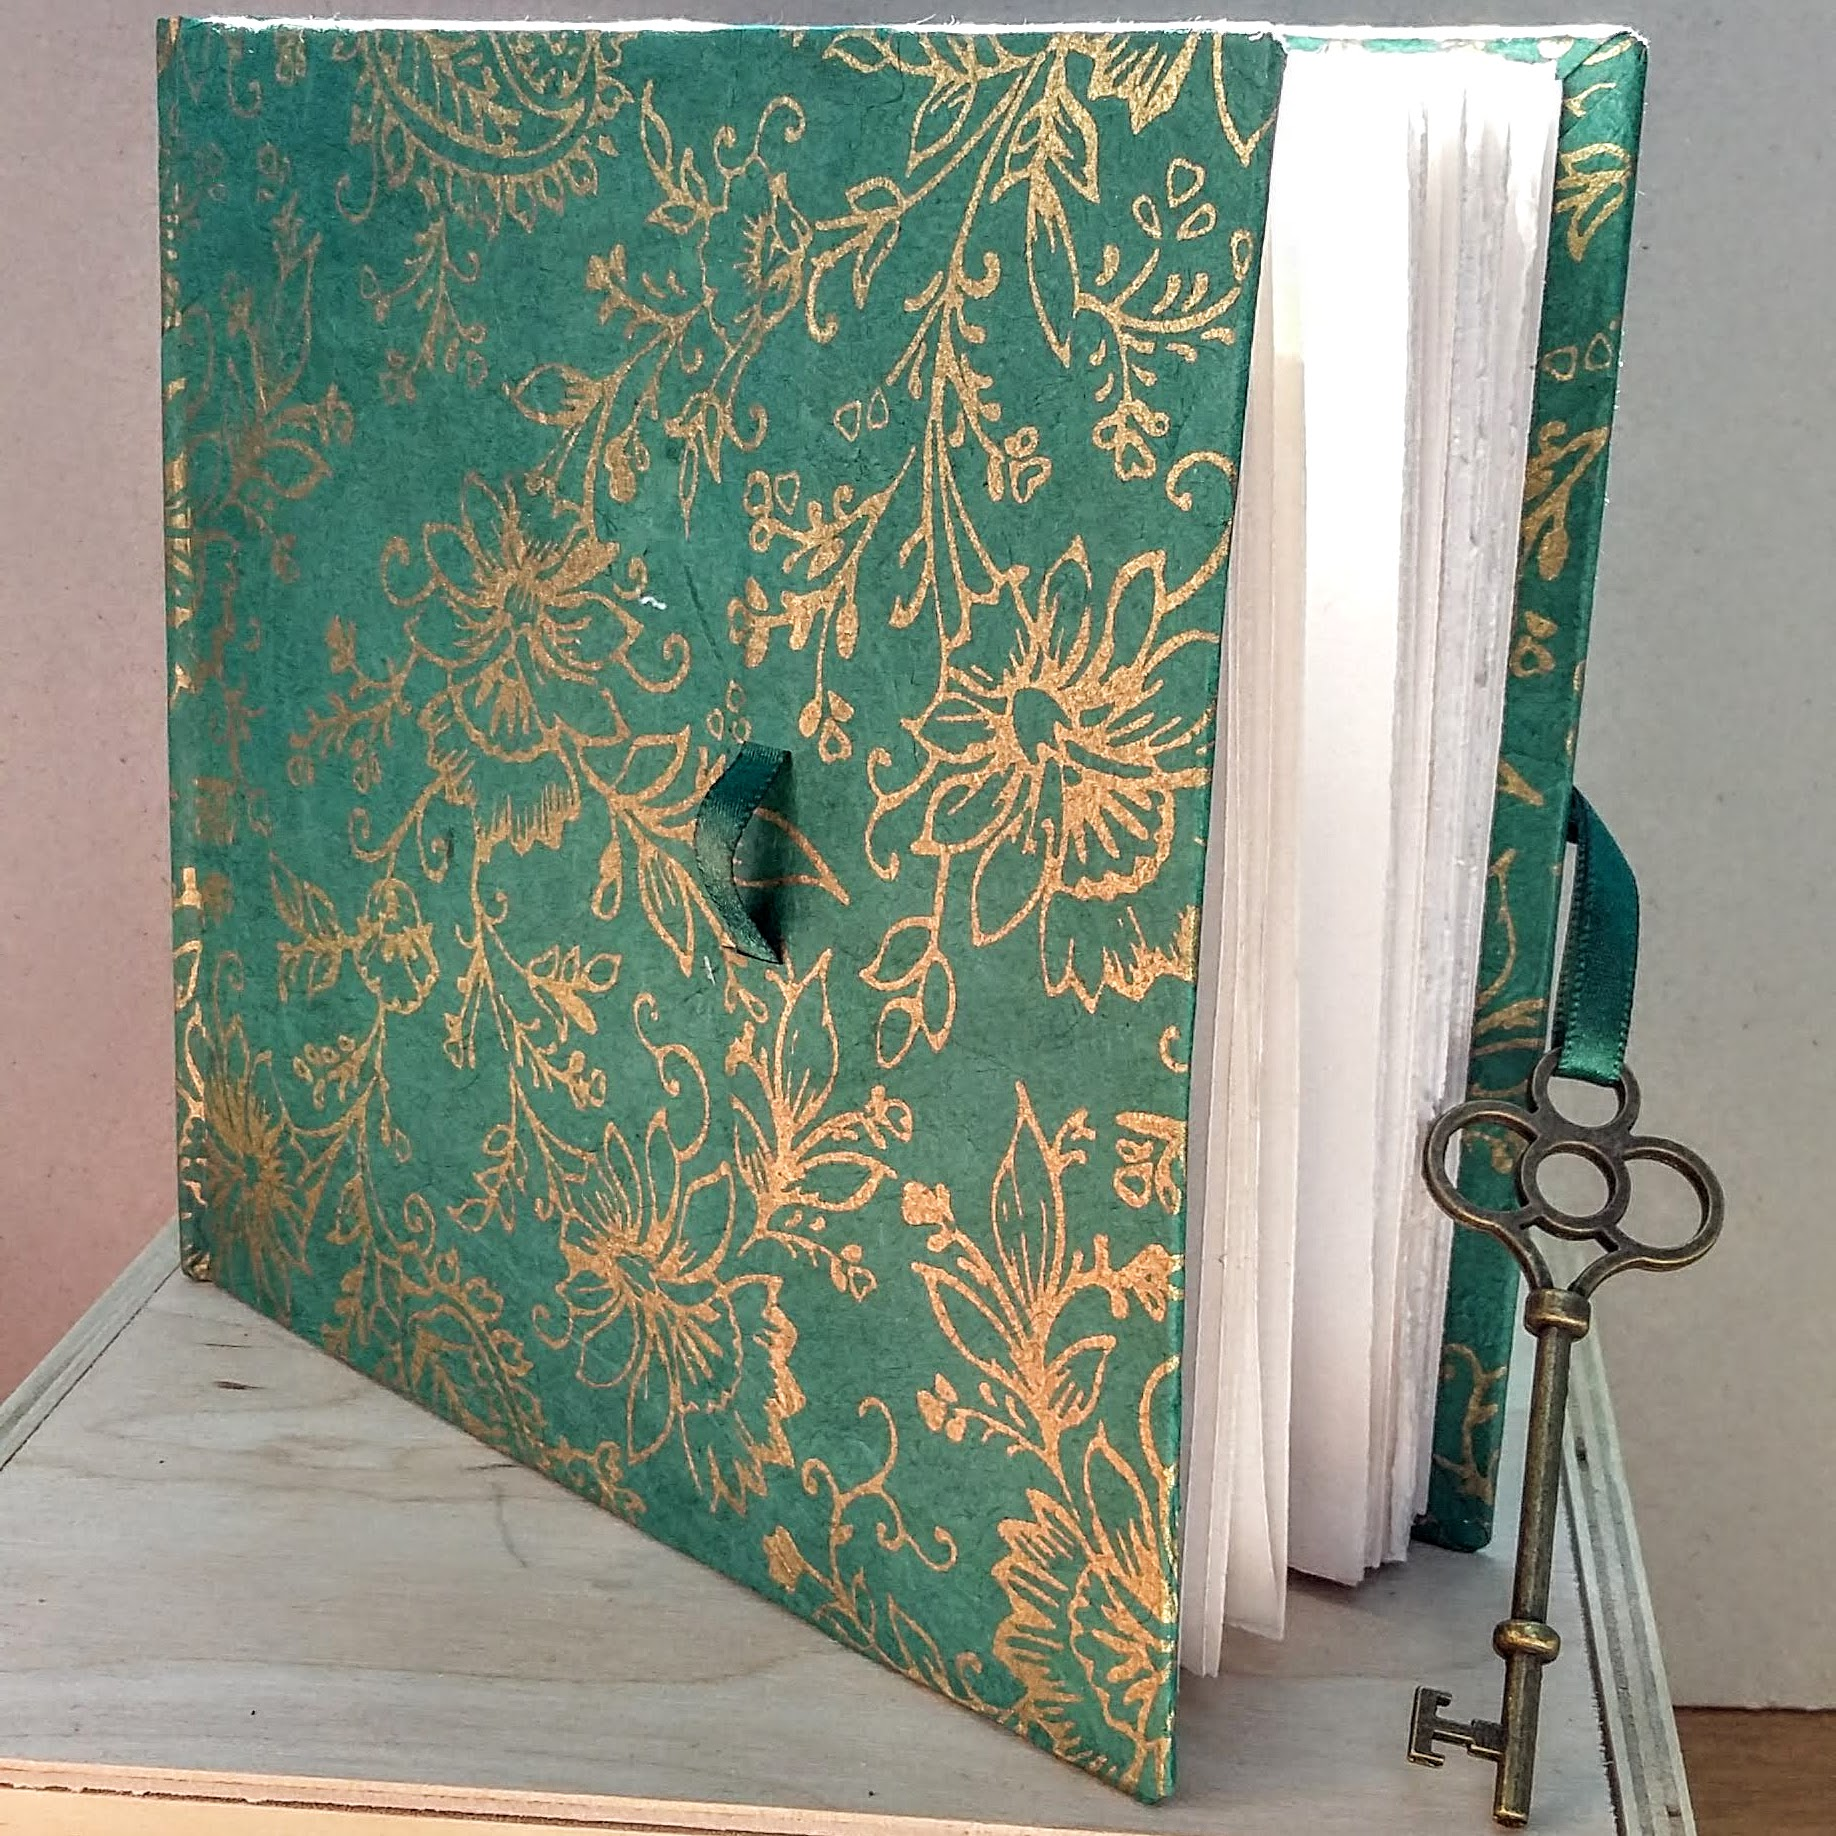 SOLD Square key closure book. 16 x 14.5 cm. 92 sides, 46 pages.